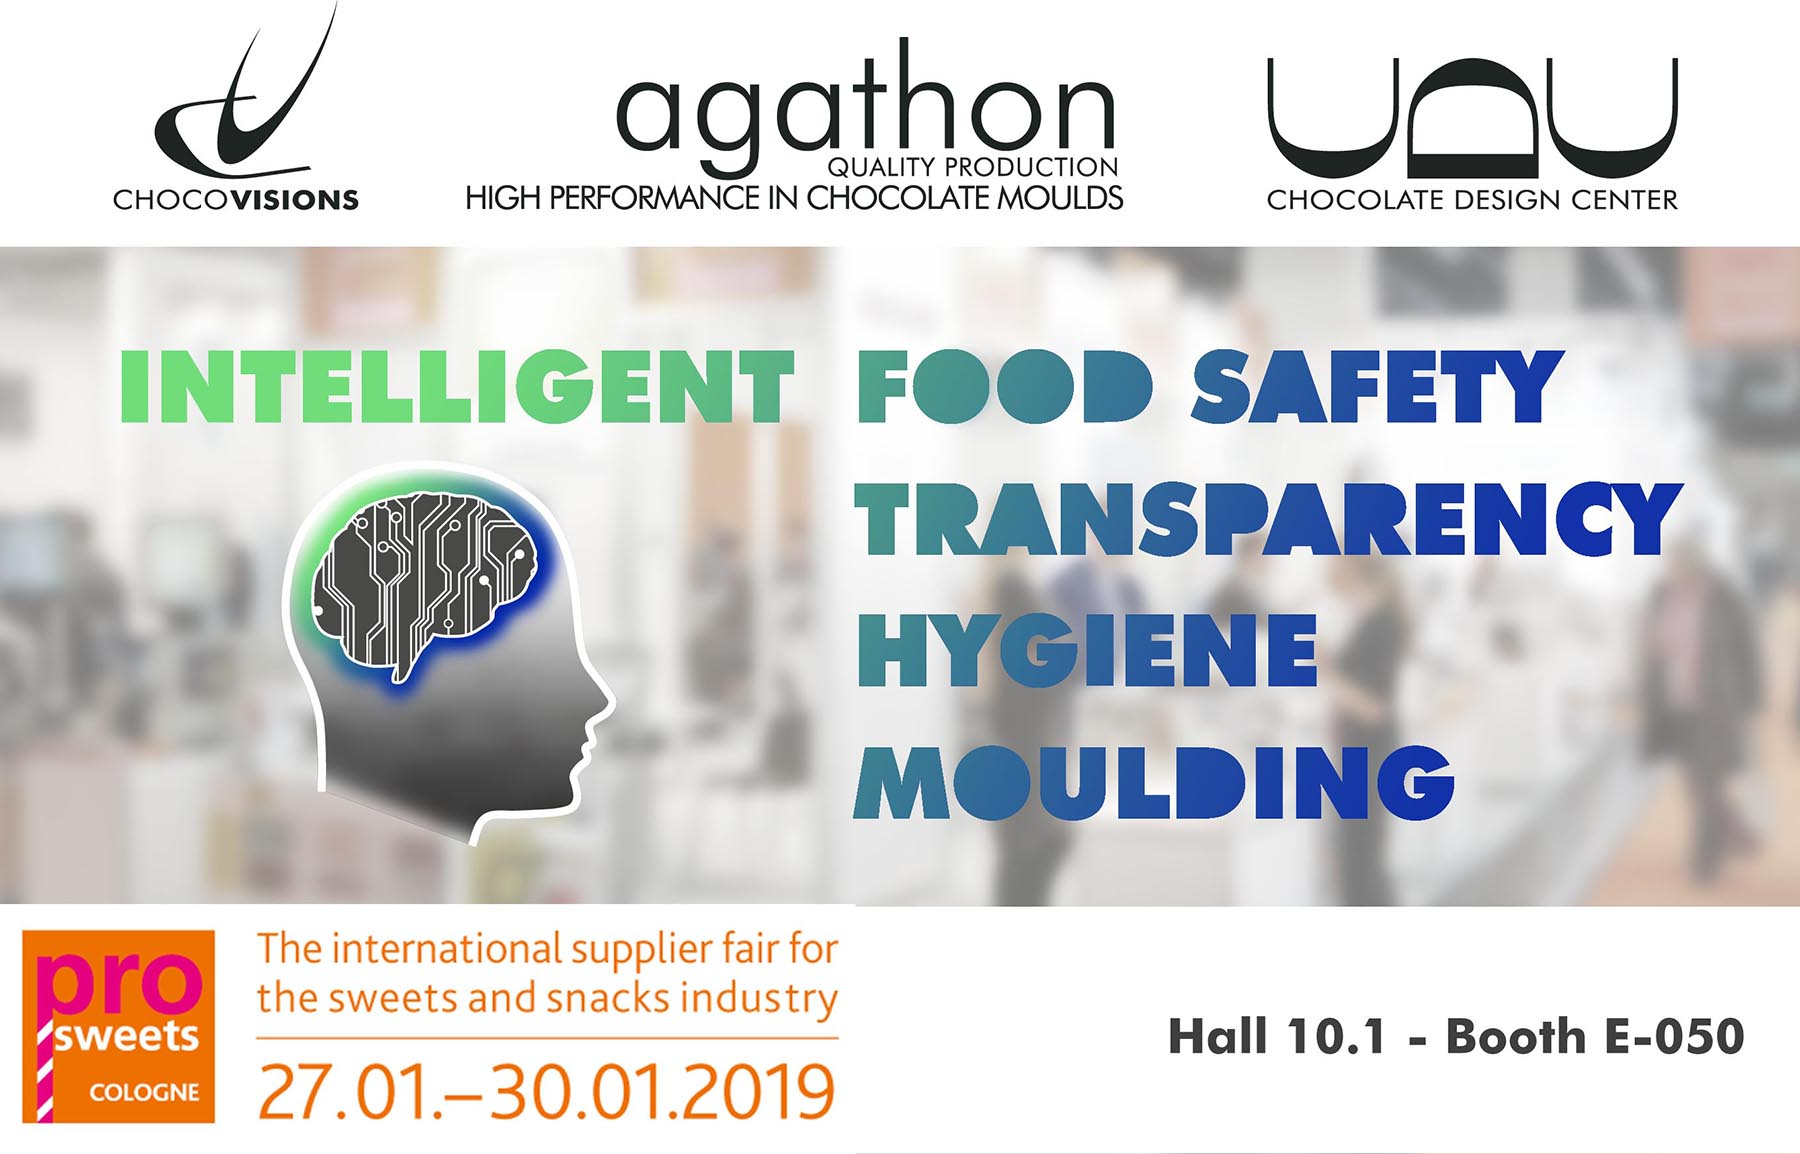 ProSweets 2019 in Cologne, Germany